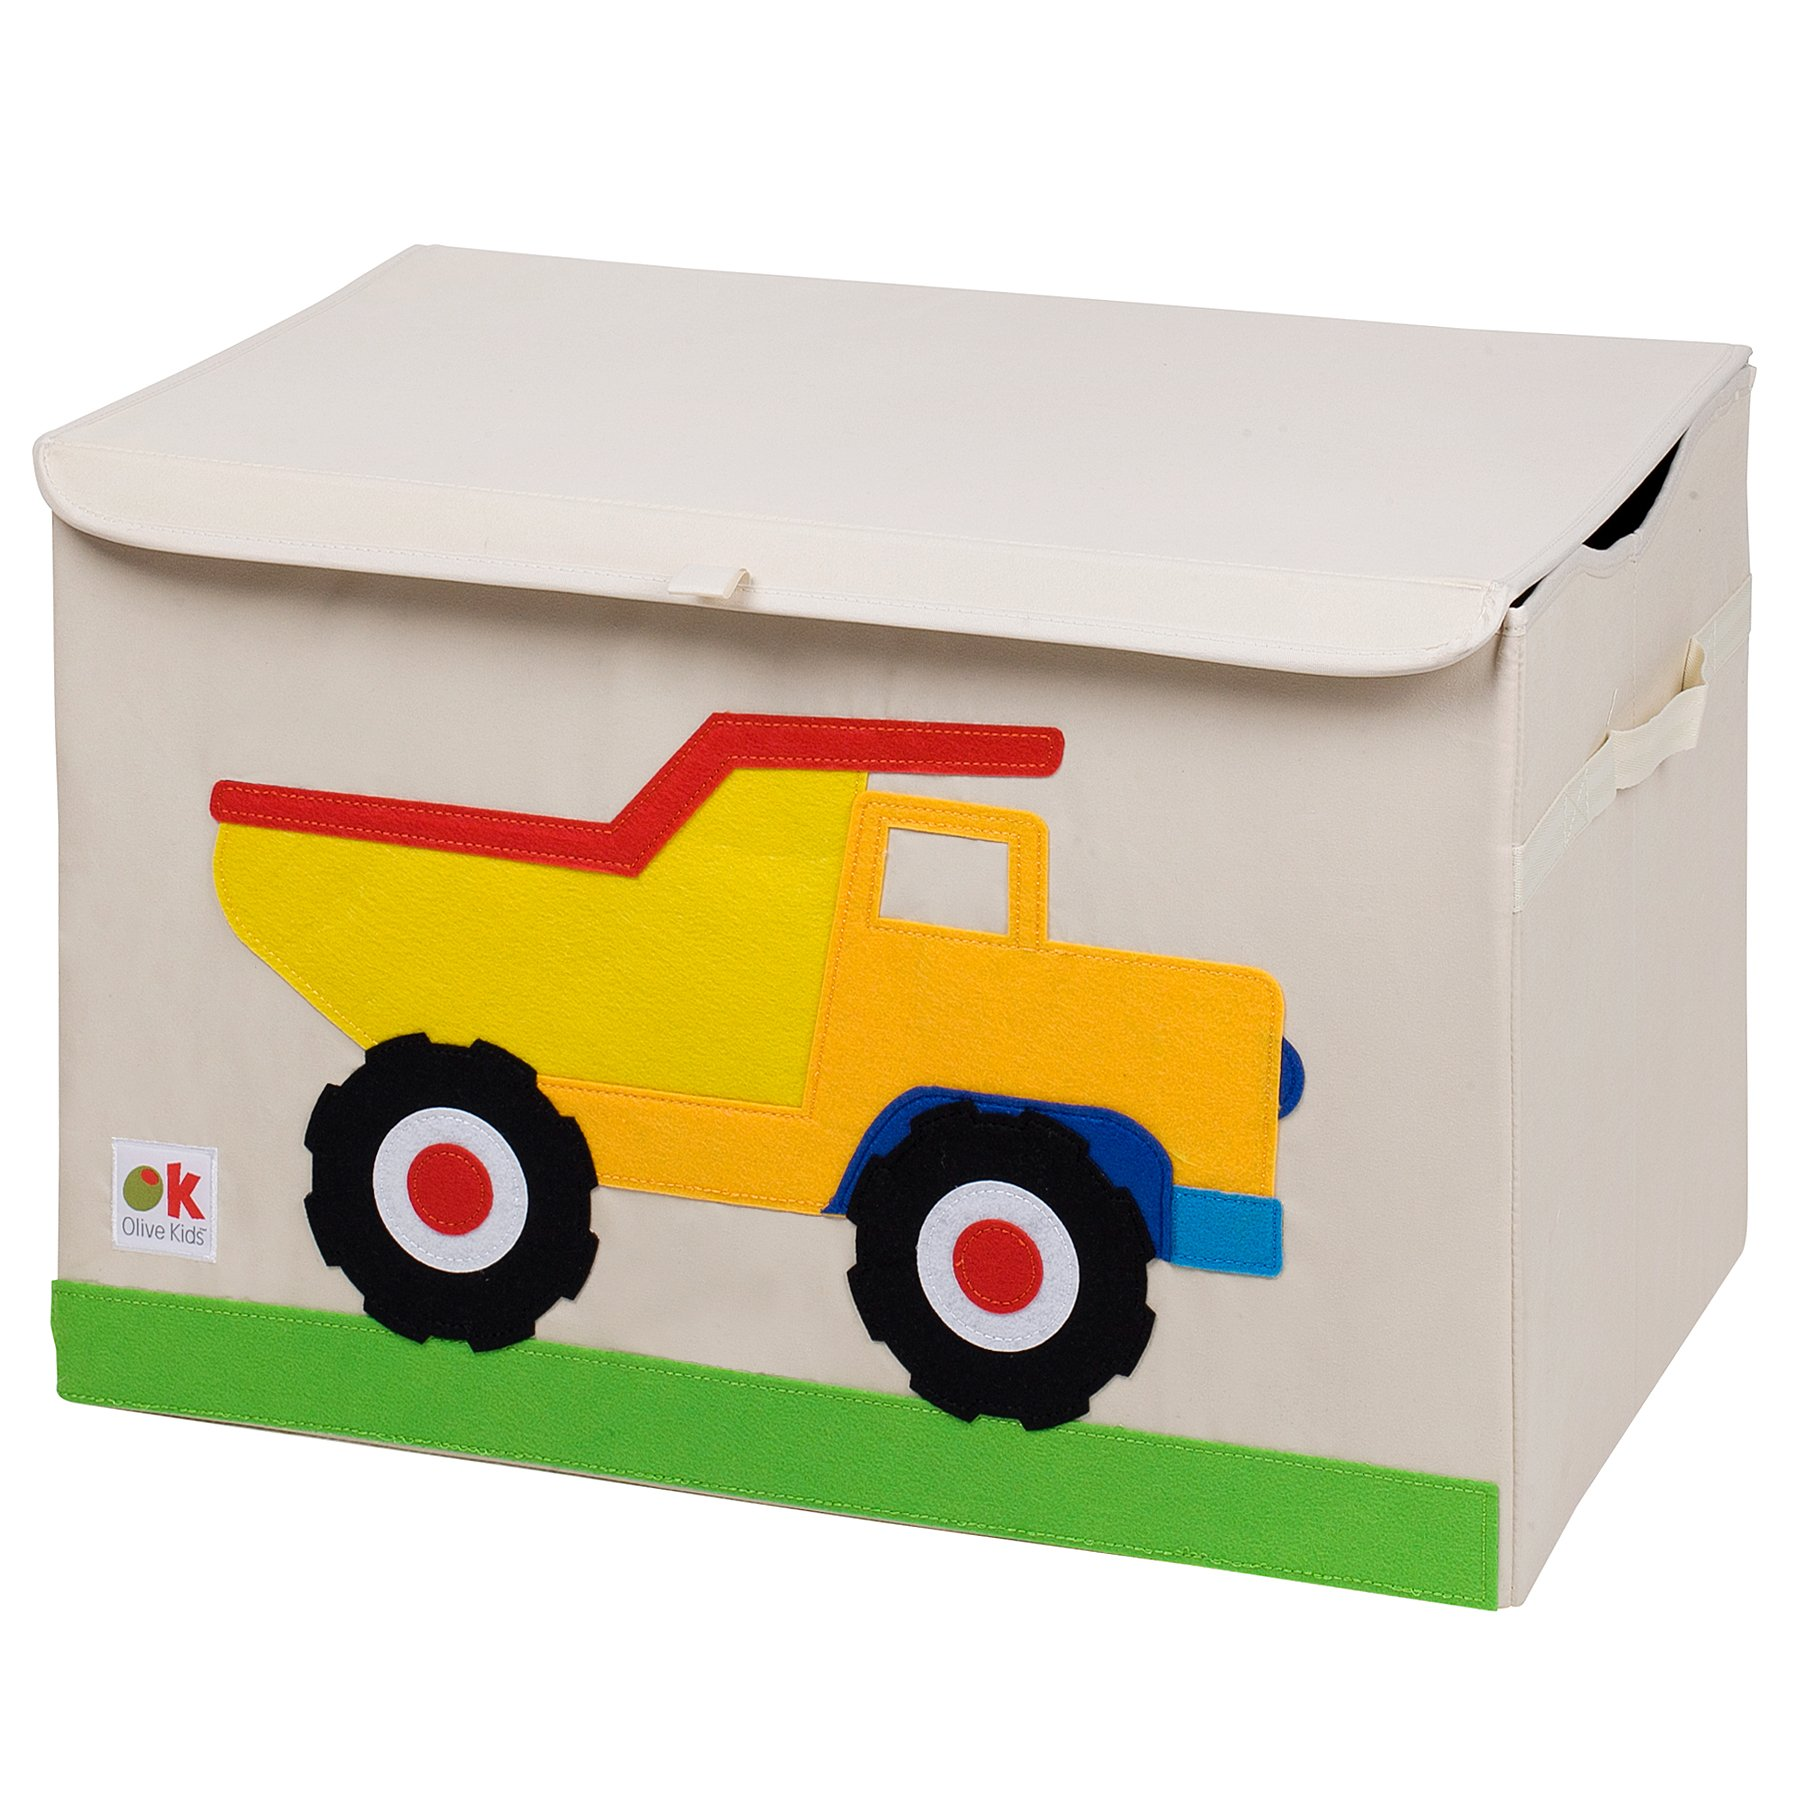 Wildkin Olive Kids Toy Chest, Perfect for Playroom Organization, Measures 24 x 15 x 14 Inches, Coordinates with Other Room Décor – Dump Truck